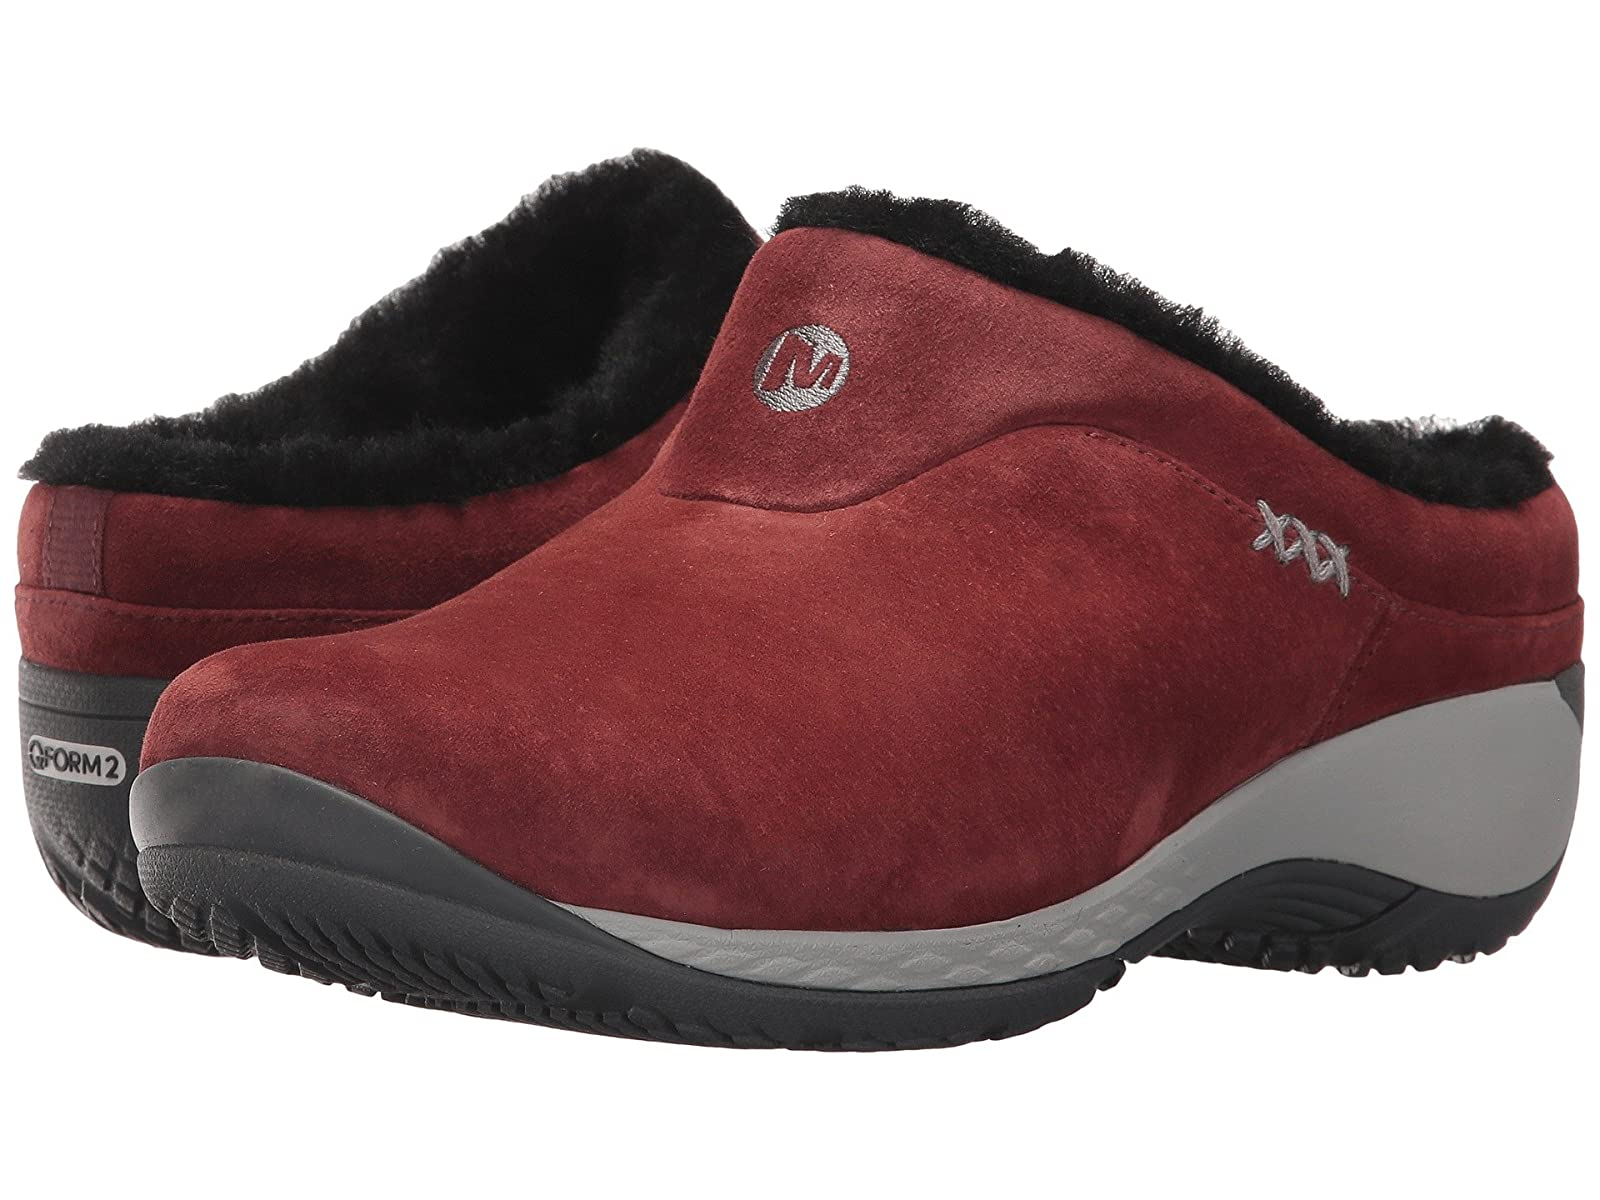 Merrell Encore Q2 IceAtmospheric grades have affordable shoes